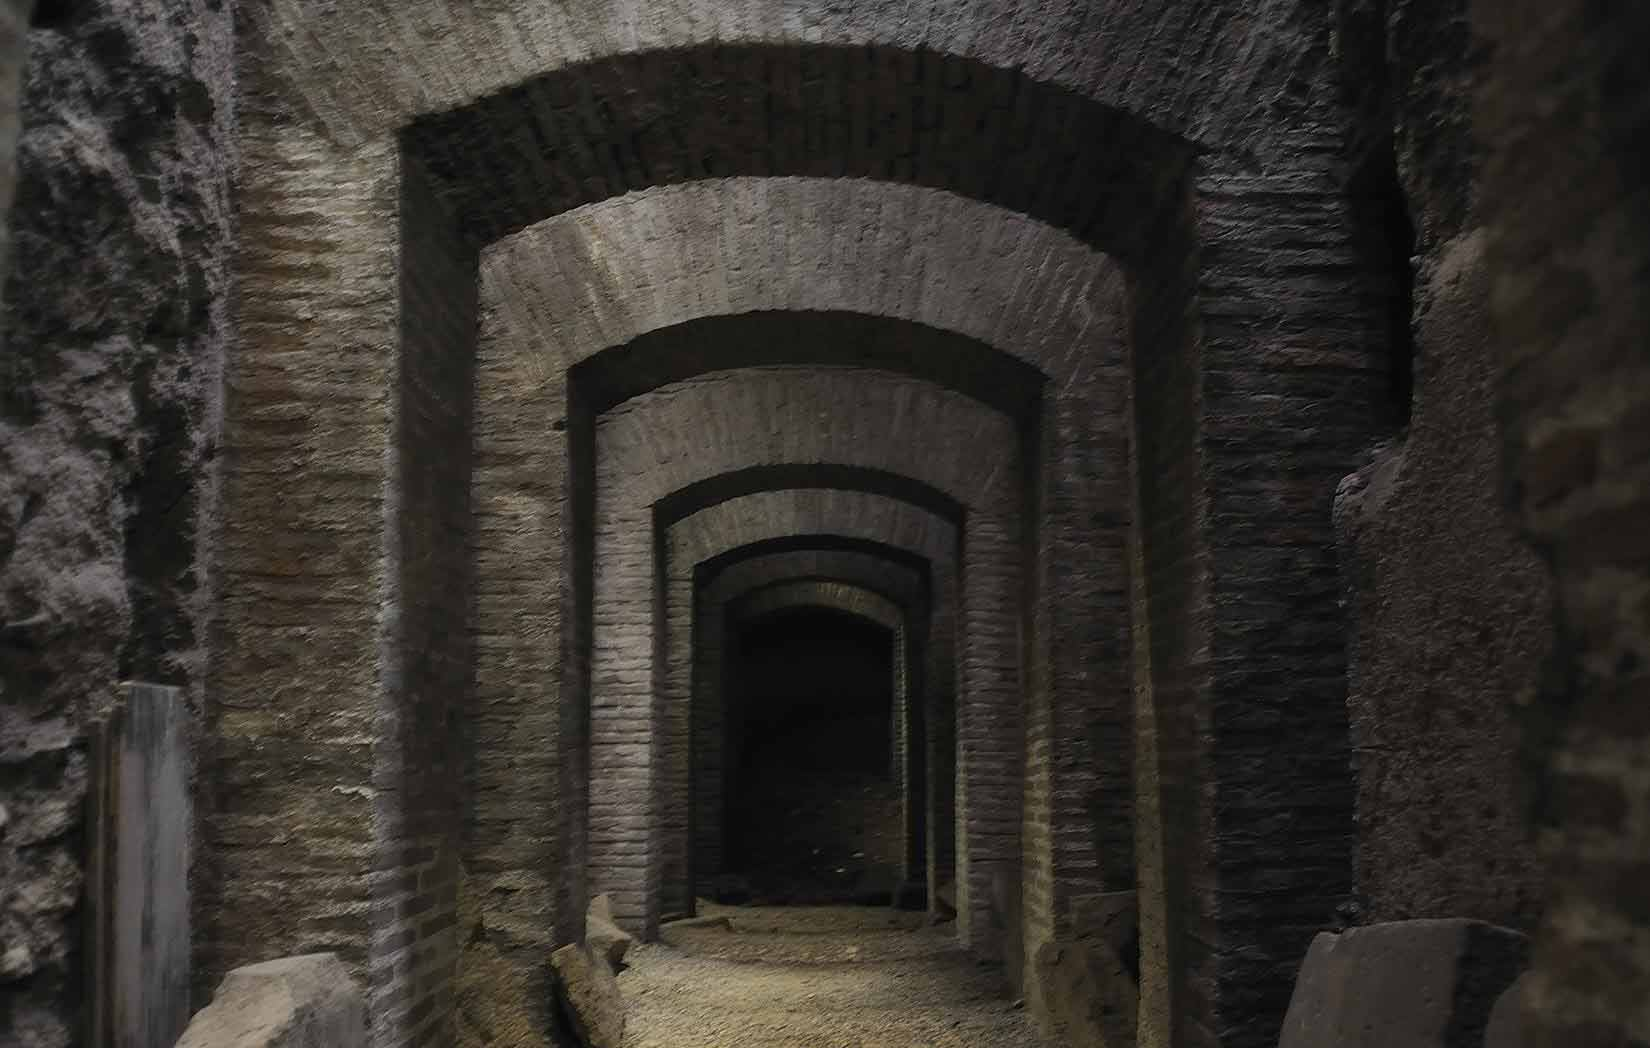 The Crypts and Catacombs of Rome - 700 km of mysteries and secrets / Chauffeur guided tour